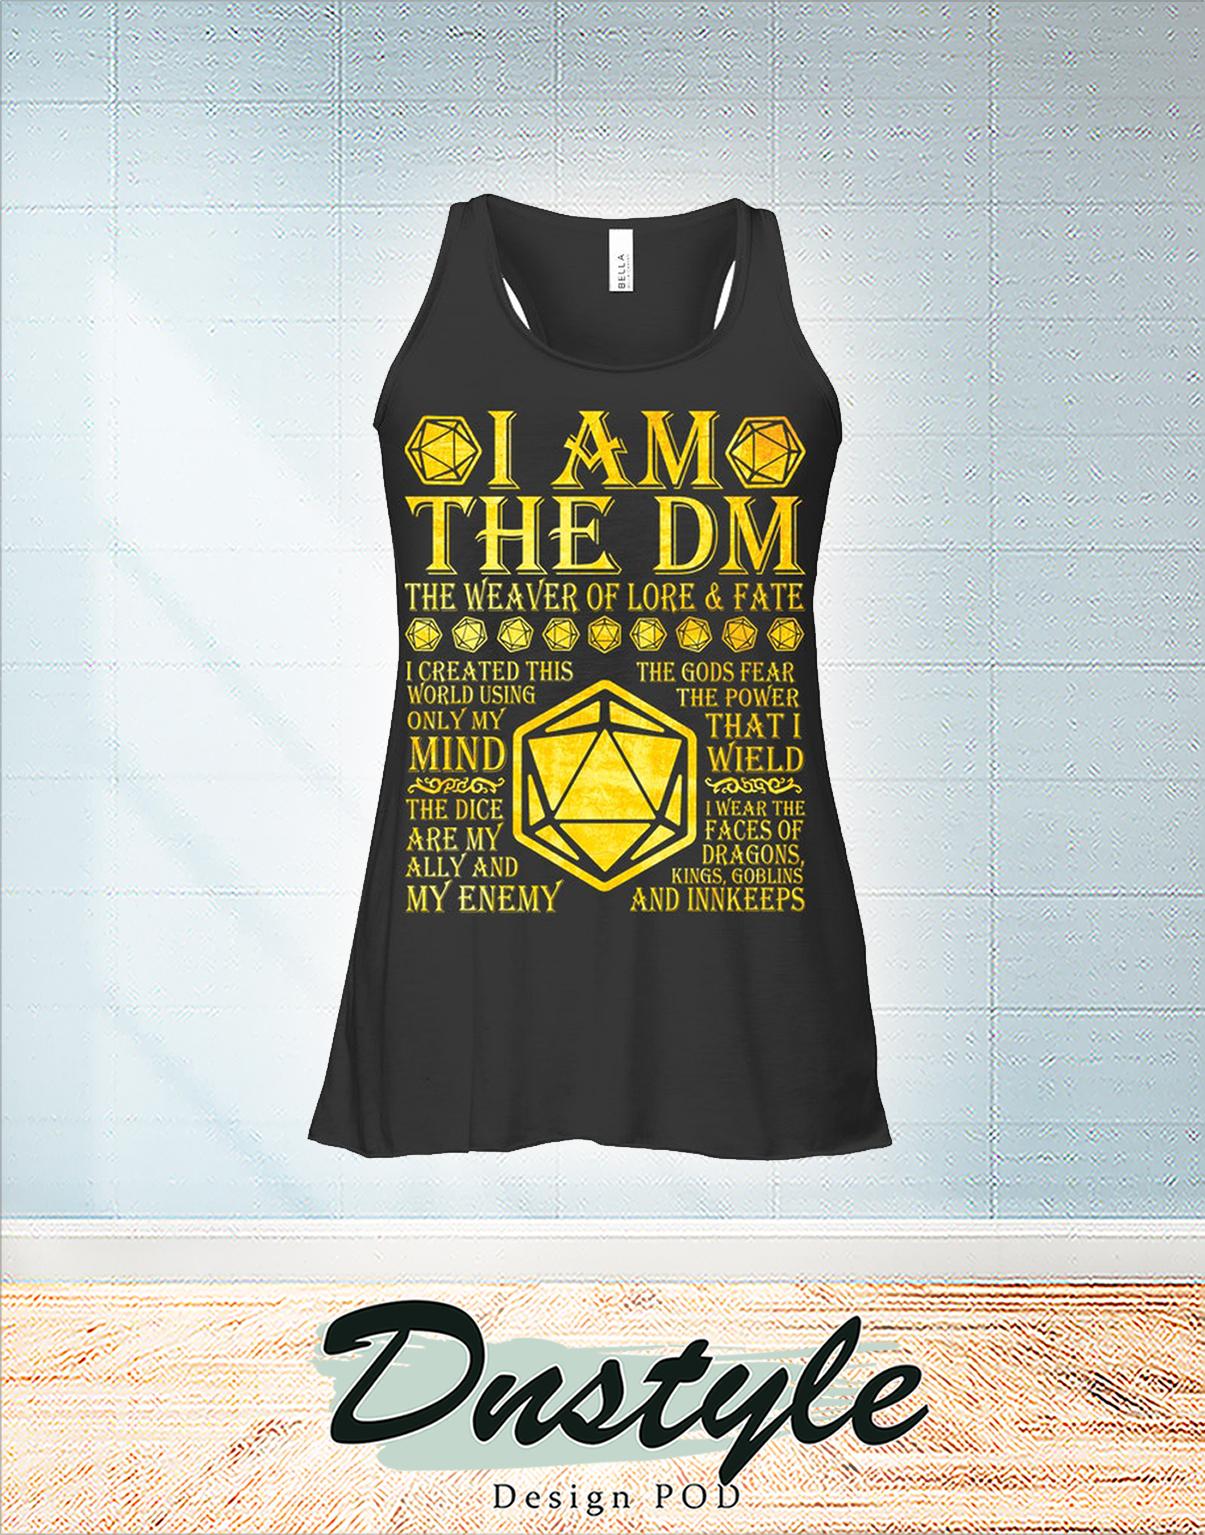 I am the dm the weaver of lore and fate flowy tank